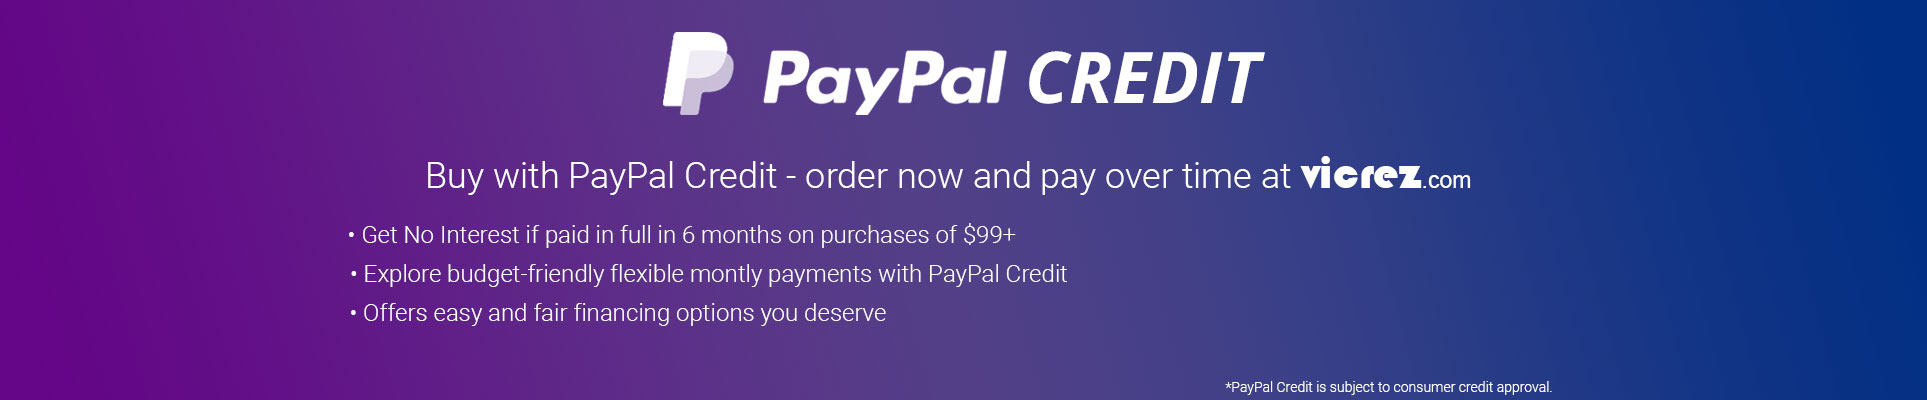 PayPal Credit | Simple Financing | Pay Later with PayPal Credit: Vicrez.com